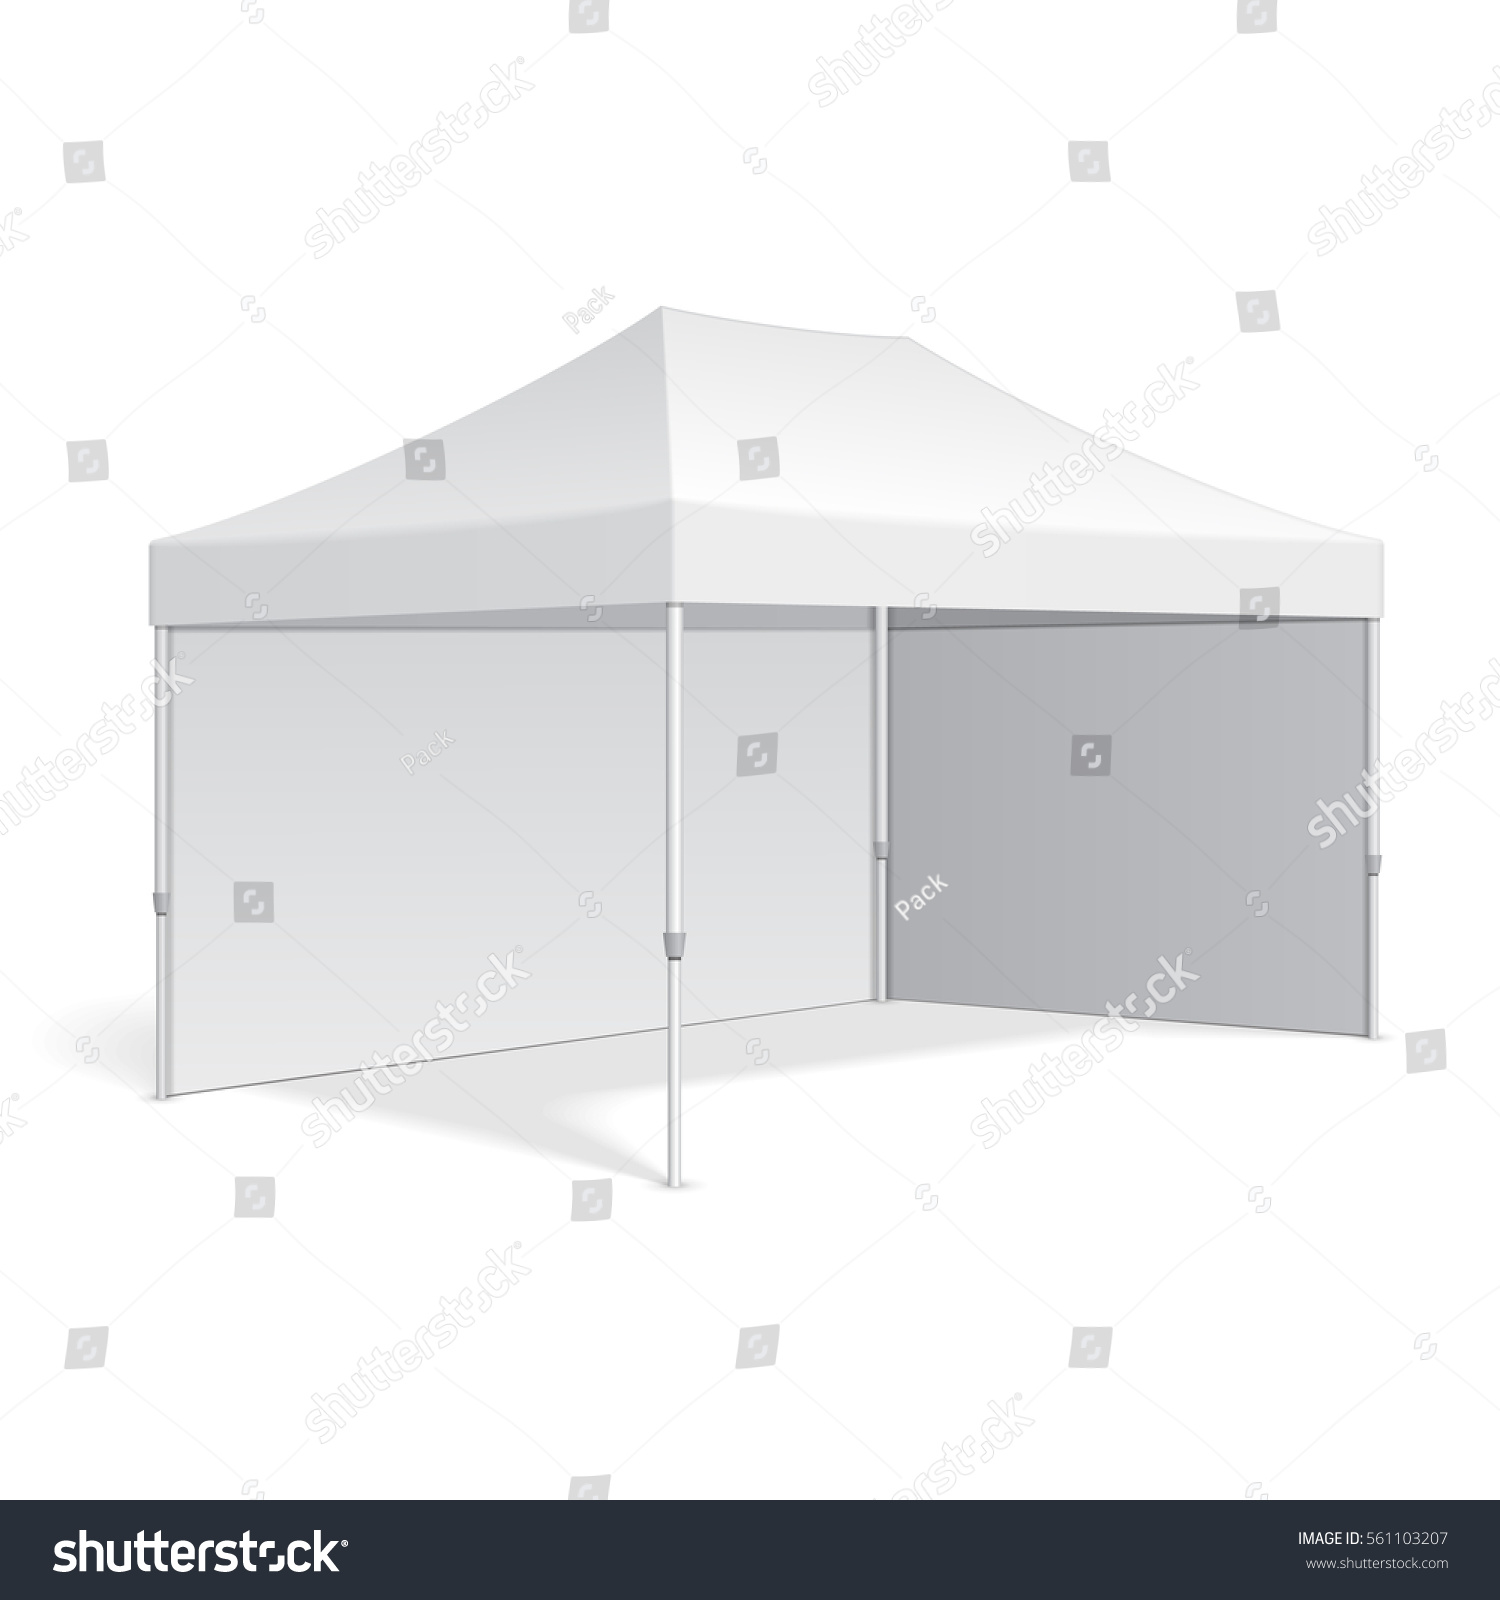 White Umbrella Marquees Promotional Advertising Outdoor Event Trade Show Stock Vector